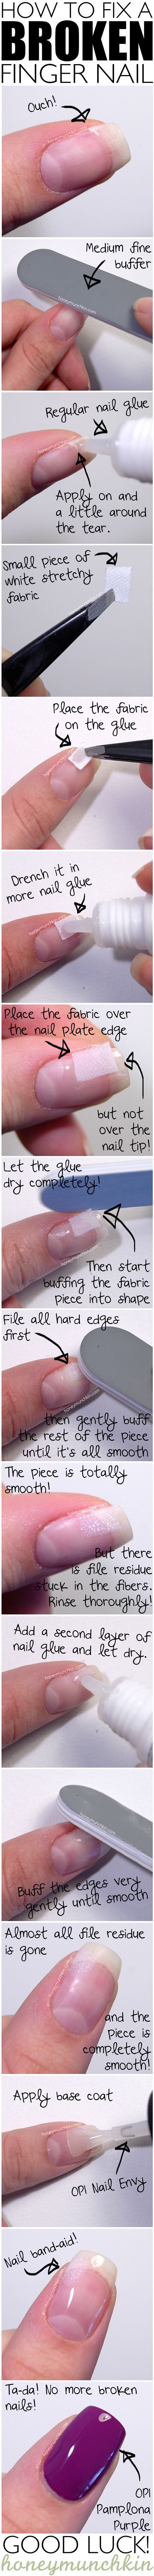 Tutorial: How to fix a broken finger nail. This is something I have always wanted to know!